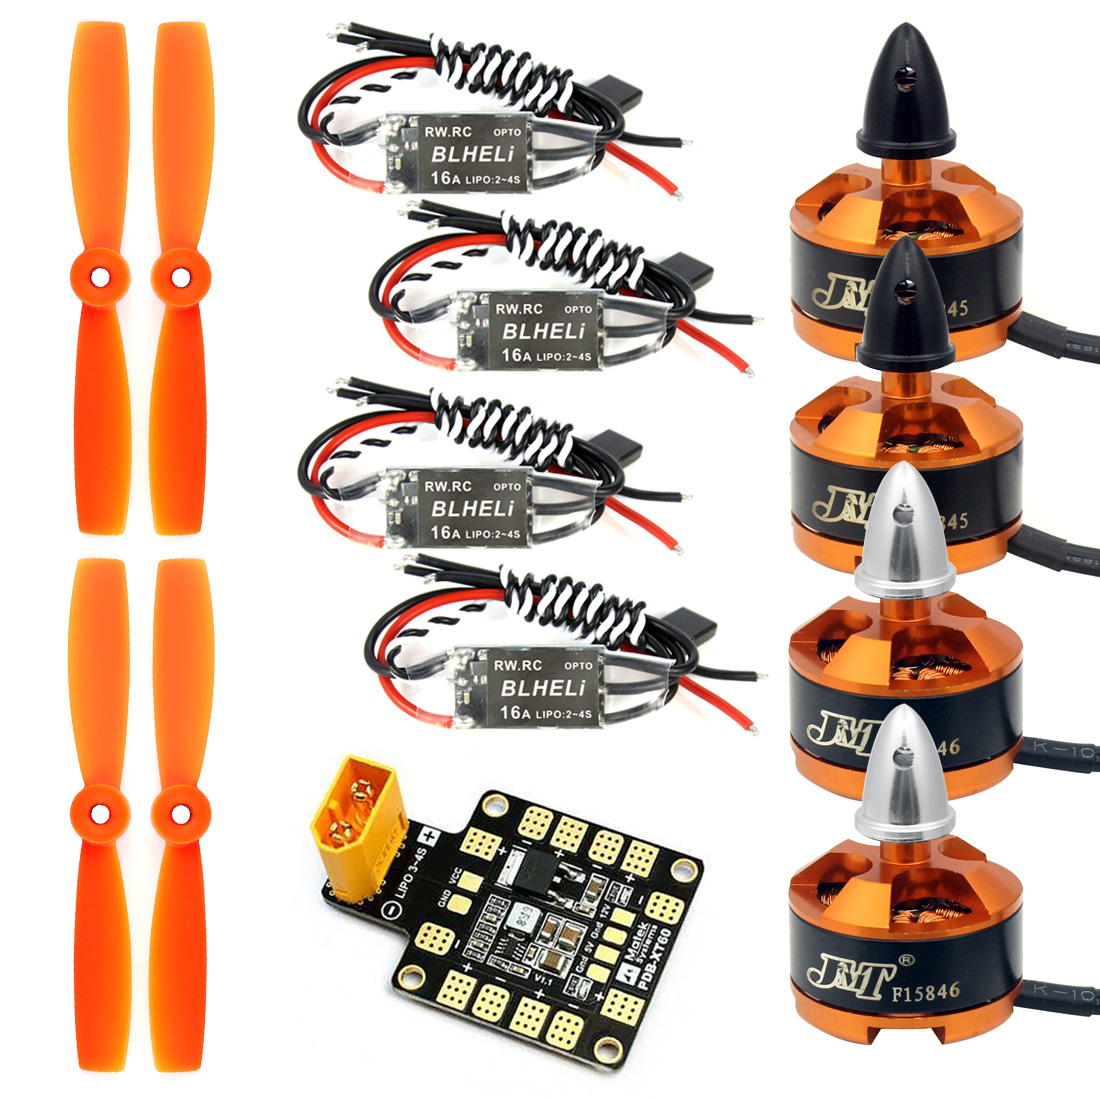 Combo Kit for 250 210 RC Quadcopter : 4x1806 2400KV Brushless Motor+Mini BLHeli OPTO 16A ESC+5045 Propellers CW CCW with PDB BEC jmt 1806 2400kv clockwise cw ccw brushless motor mini multi rotor motor for 250 across fpv 260 rc quadcopter aircraft